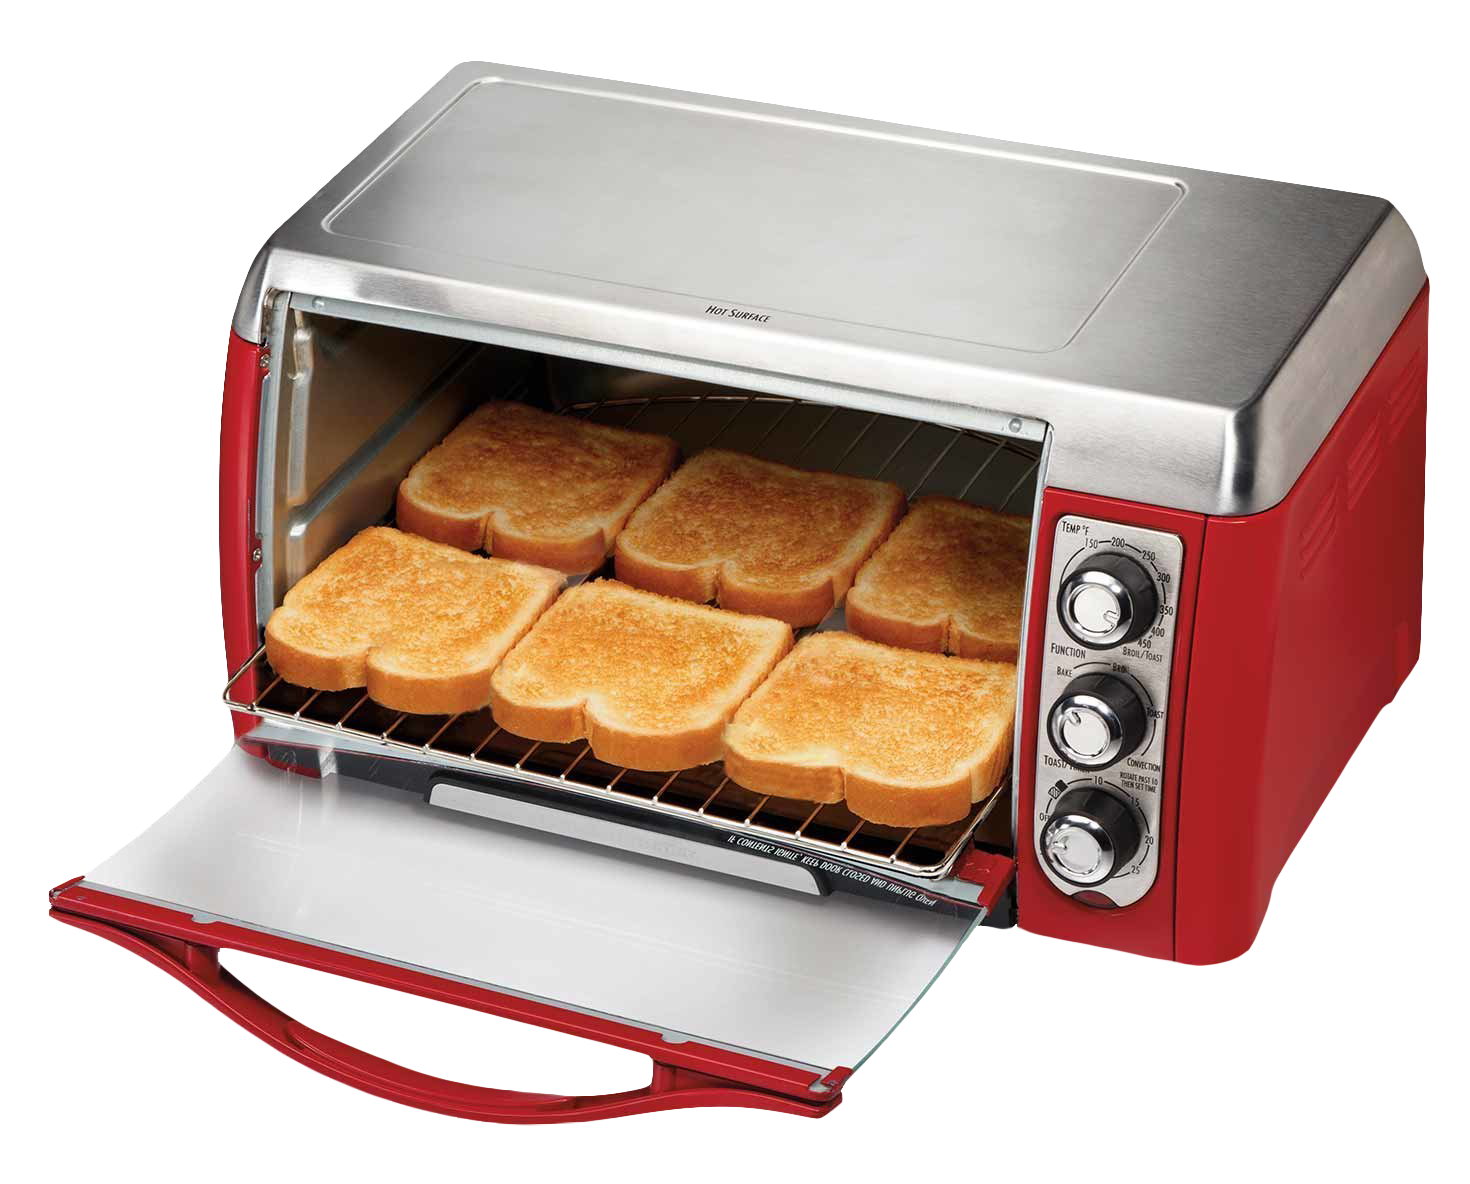 Microwave clipart hot oven. Toaster png image pngpix